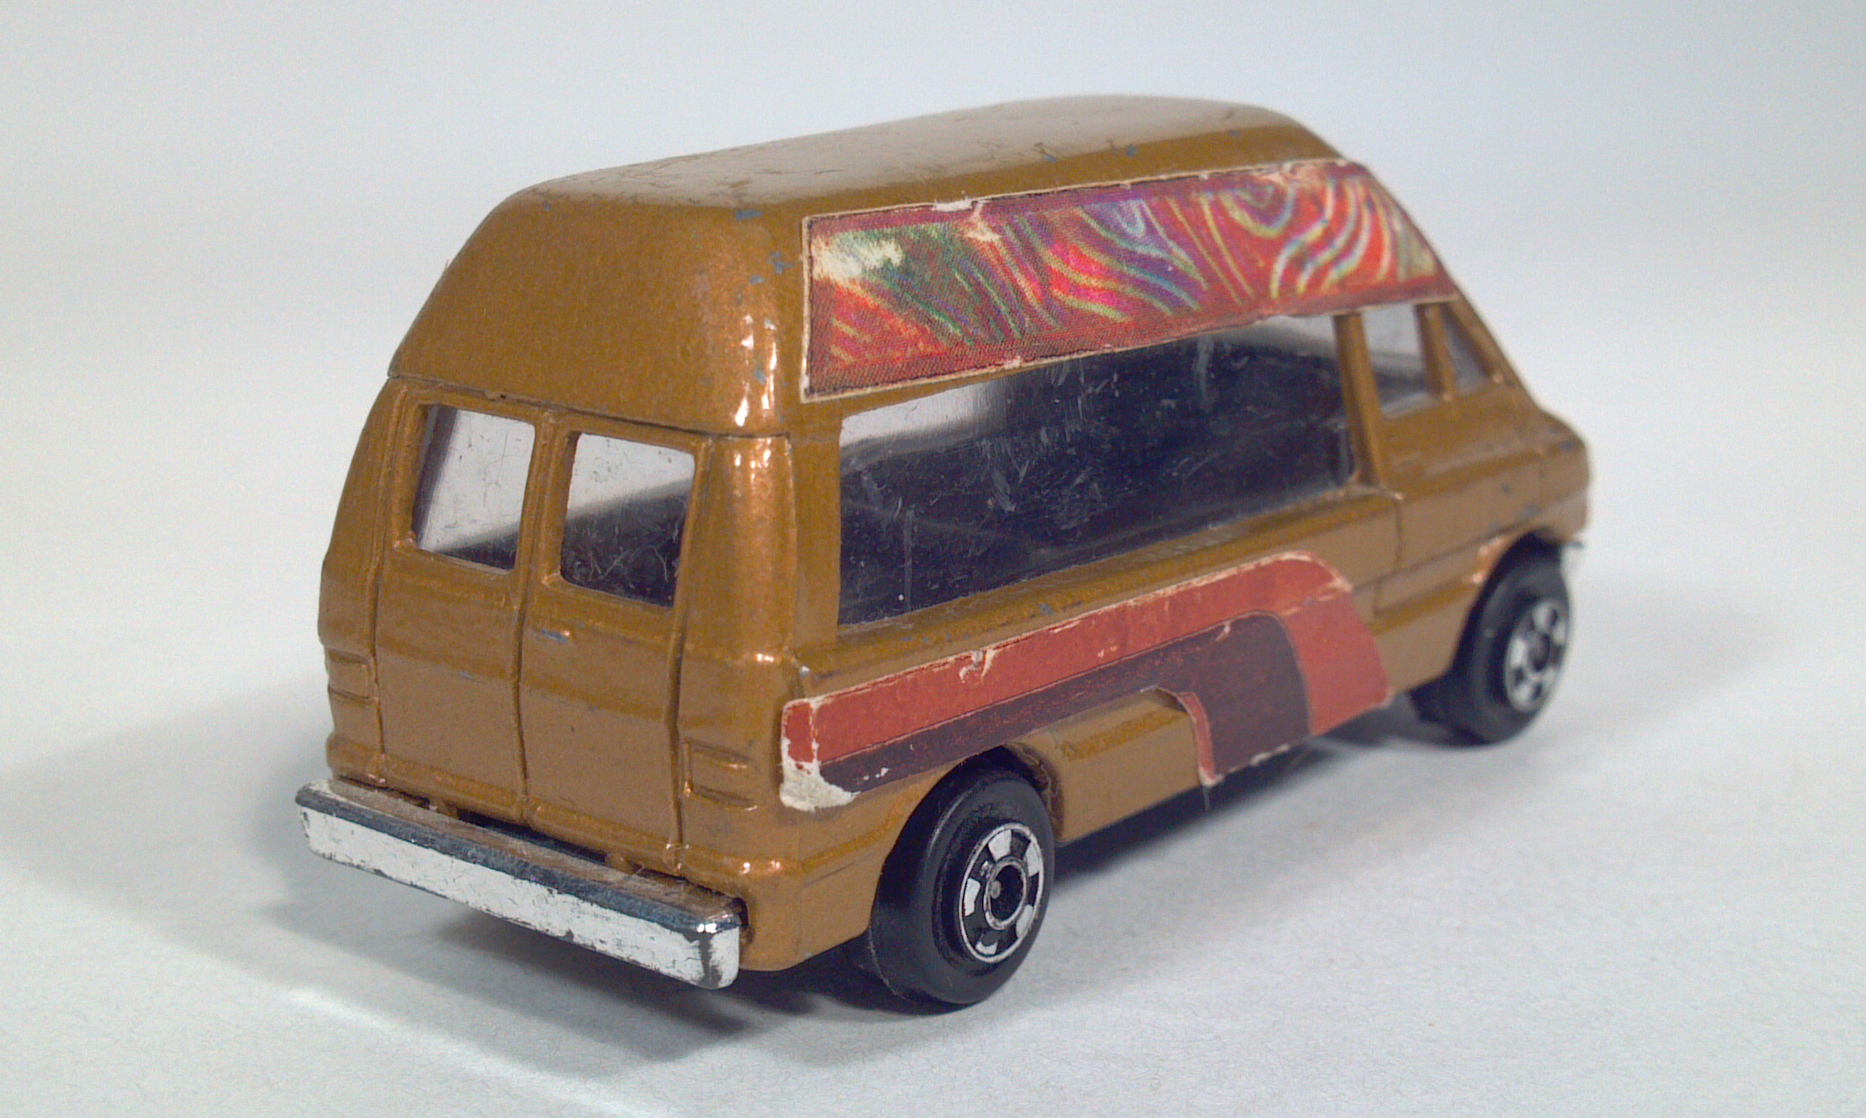 Diecast Toy Van Scale Models